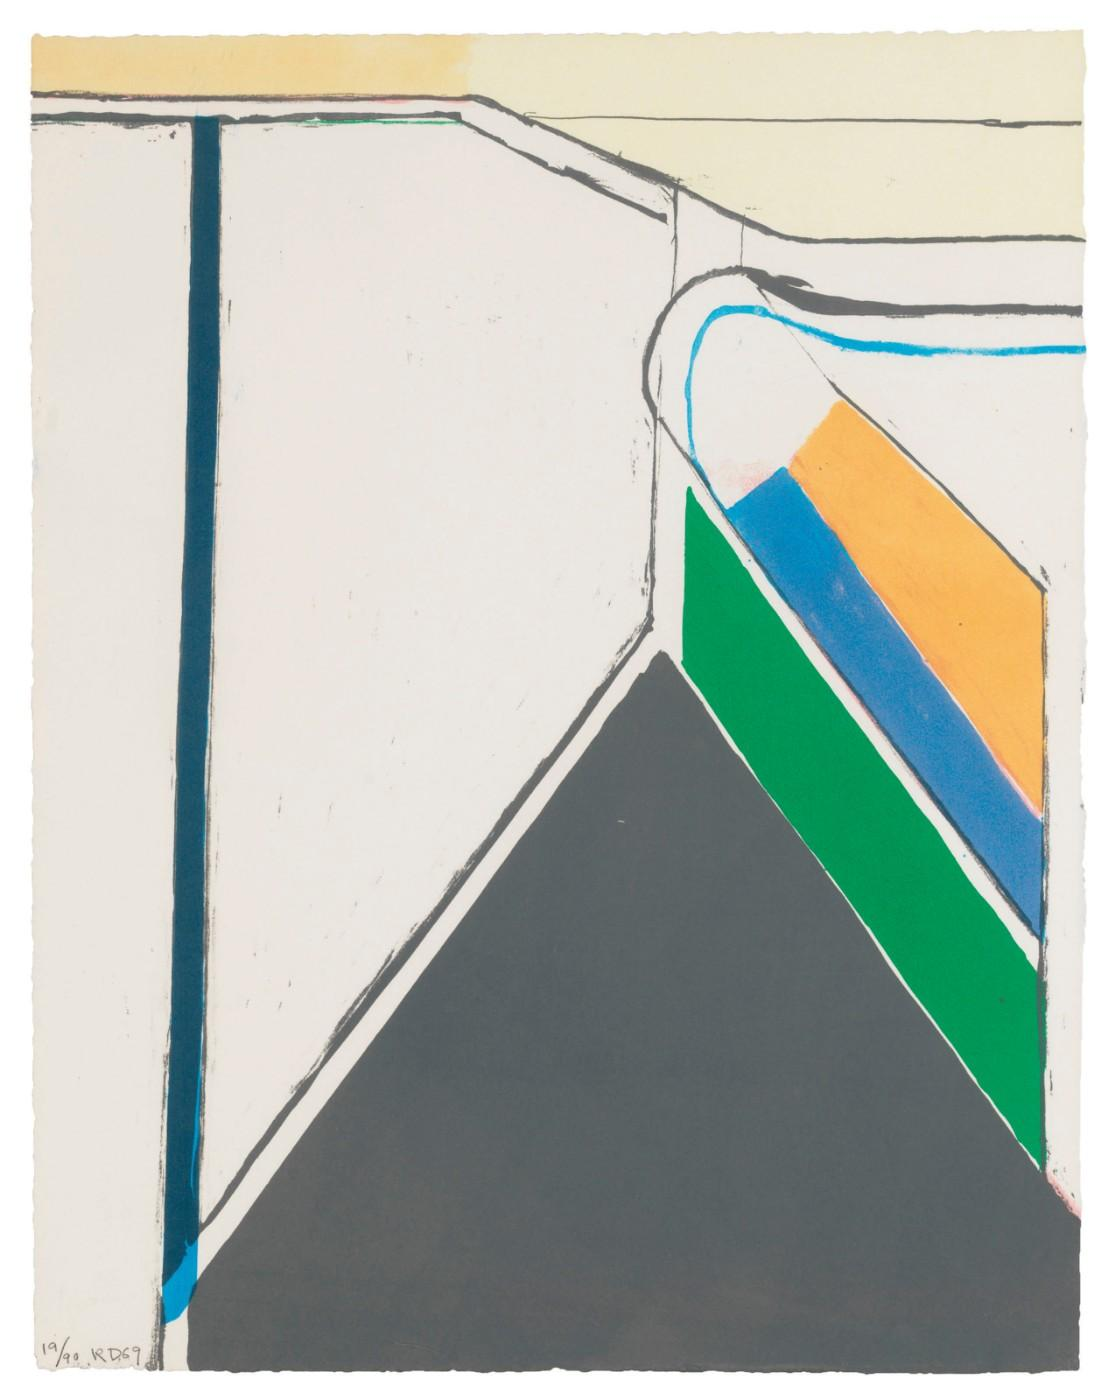 Richard Diebenkorn (1922-1993), Untitled (Ocean Park), 1969